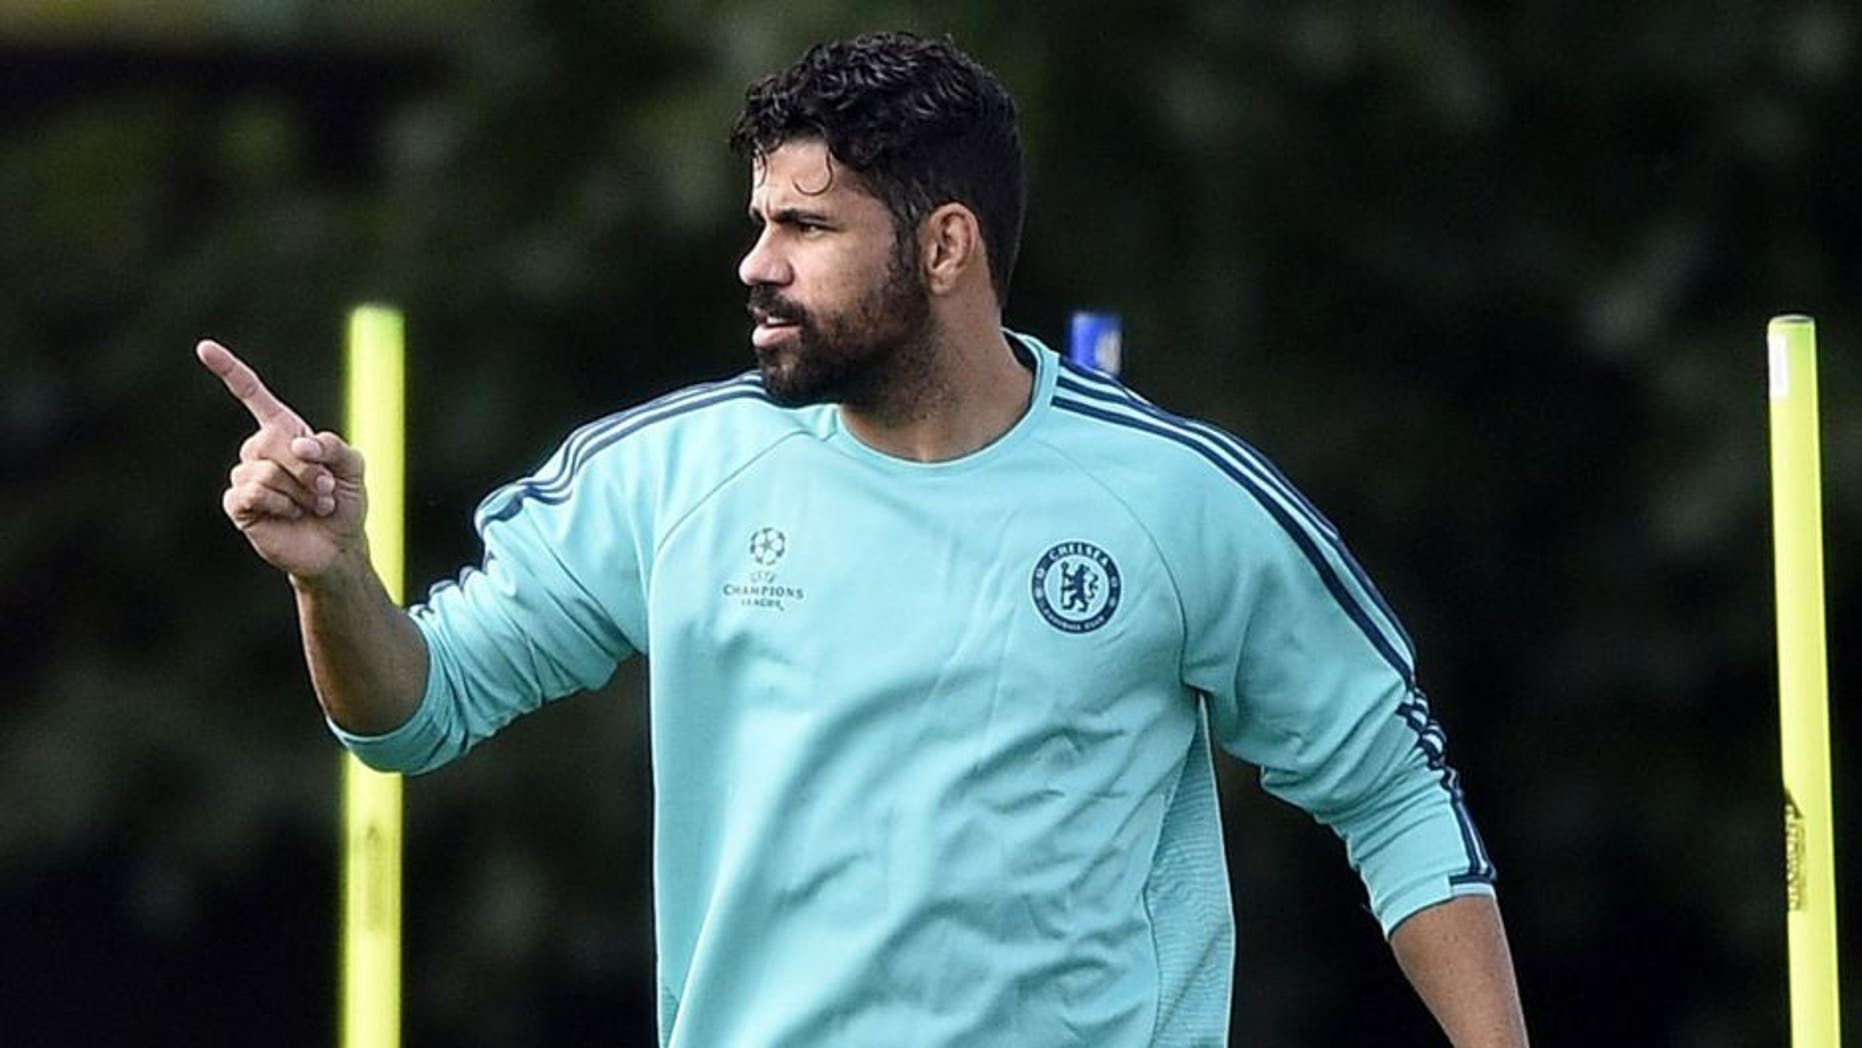 Chelsea's Brazilian-born Spanish striker Diego Costa reacts during a training session at Chelsea's training ground in Stoke D'Abernon, south of London, on September 28, 2015, on the eve of their UEFA Champions League Group G football match against Porto. AFP PHOTO / FRANCK FIFE (Photo credit should read FRANCK FIFE/AFP/Getty Images)